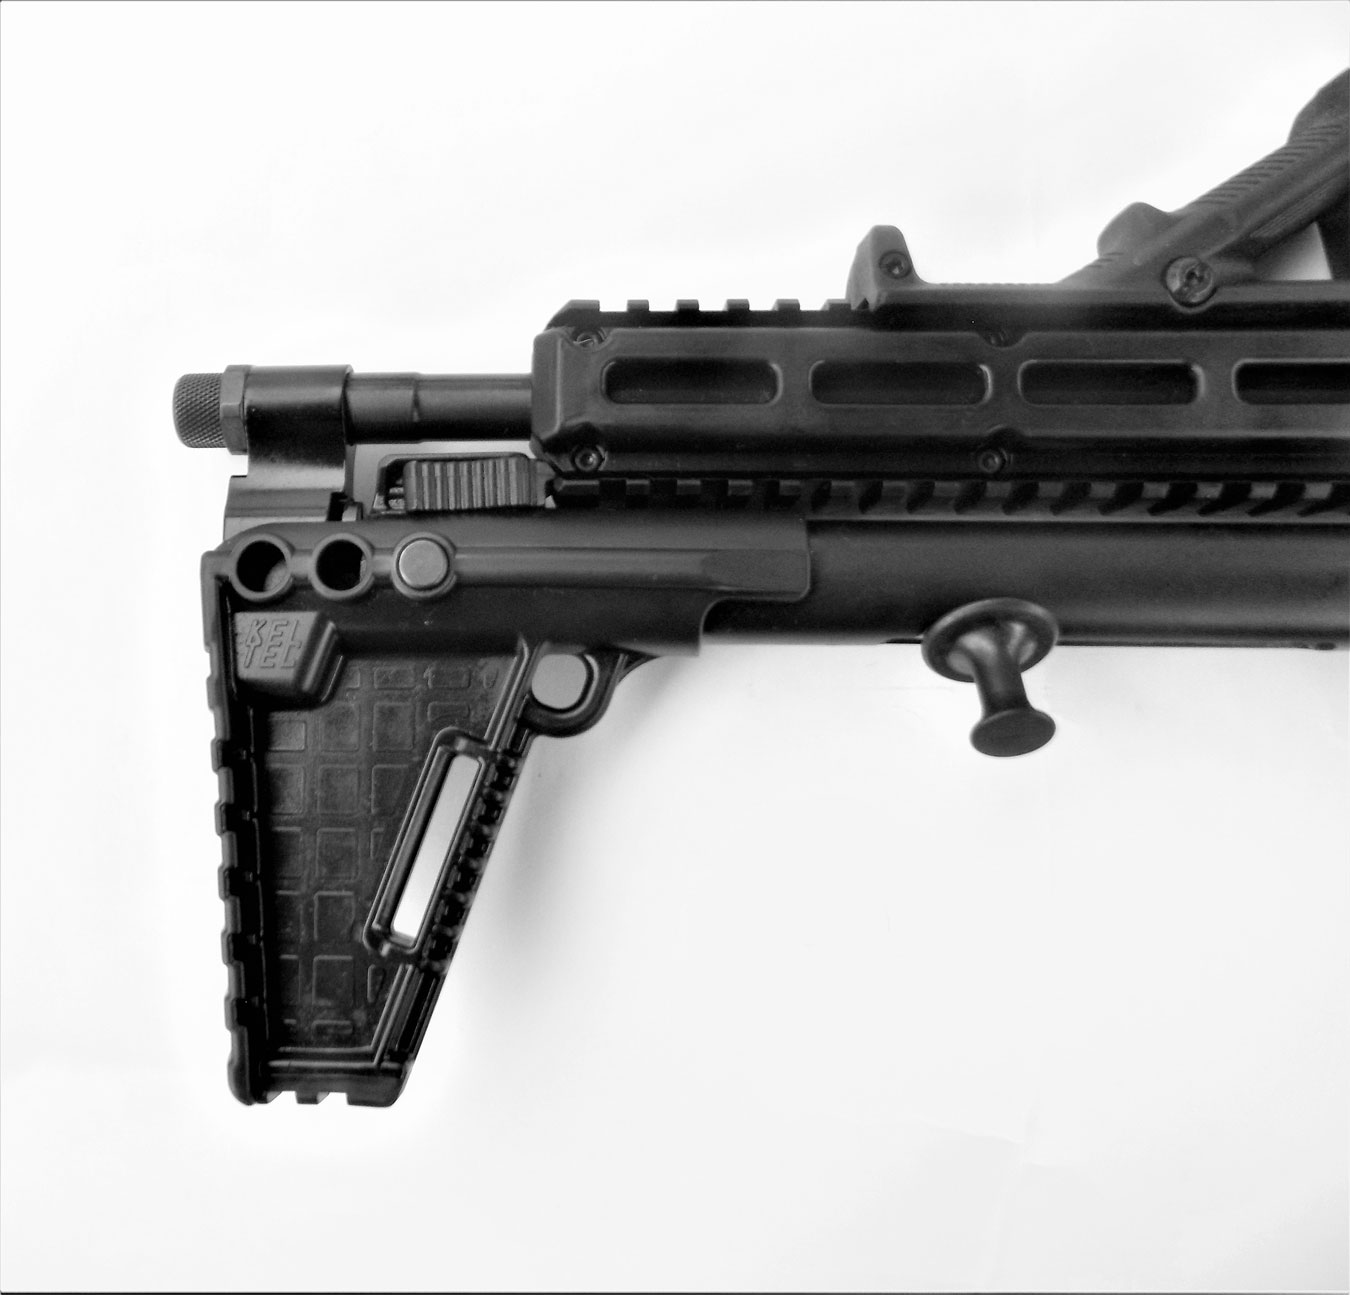 locking the Kel-Tec Sub 2000 in the folded position